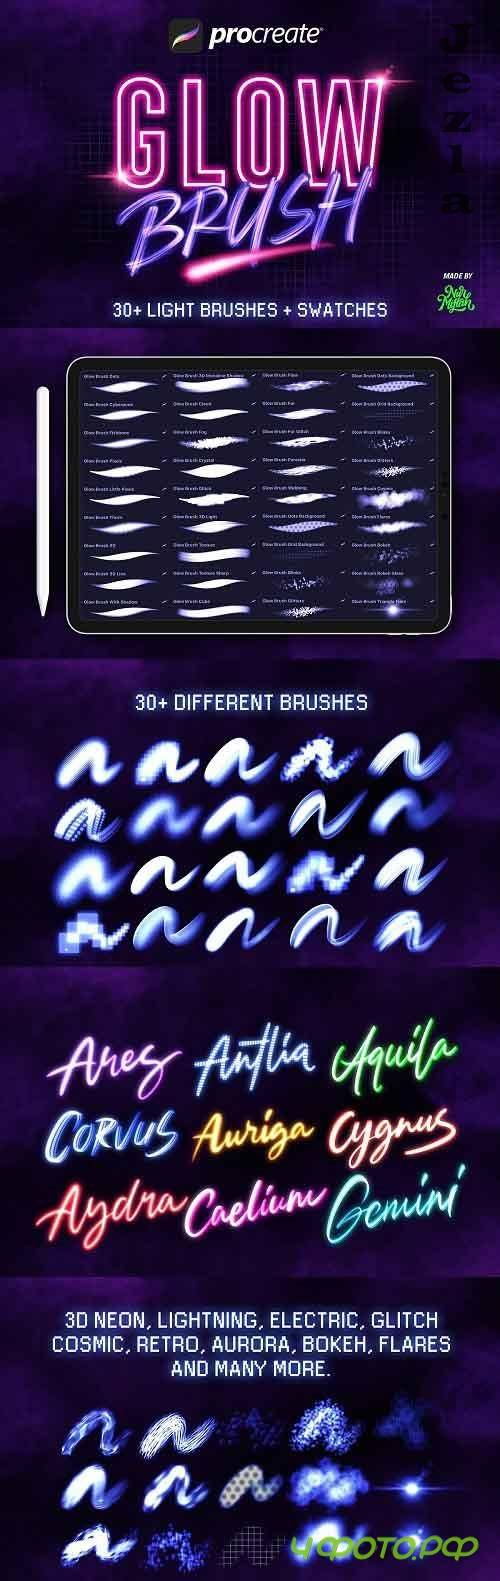 30+ Procreate Glow Brushes - 5386220